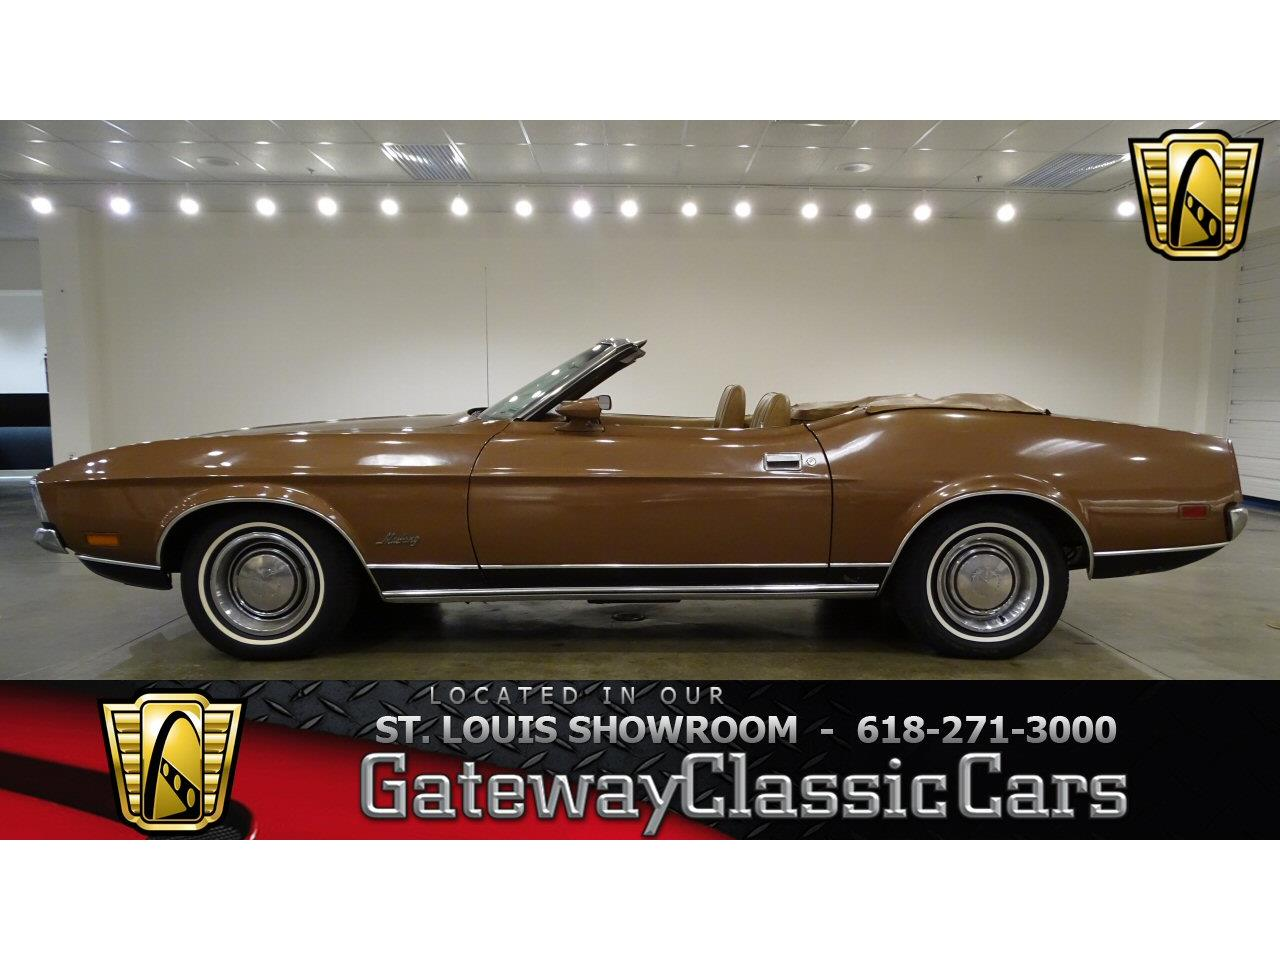 Large picture of 72 mustang jo3l